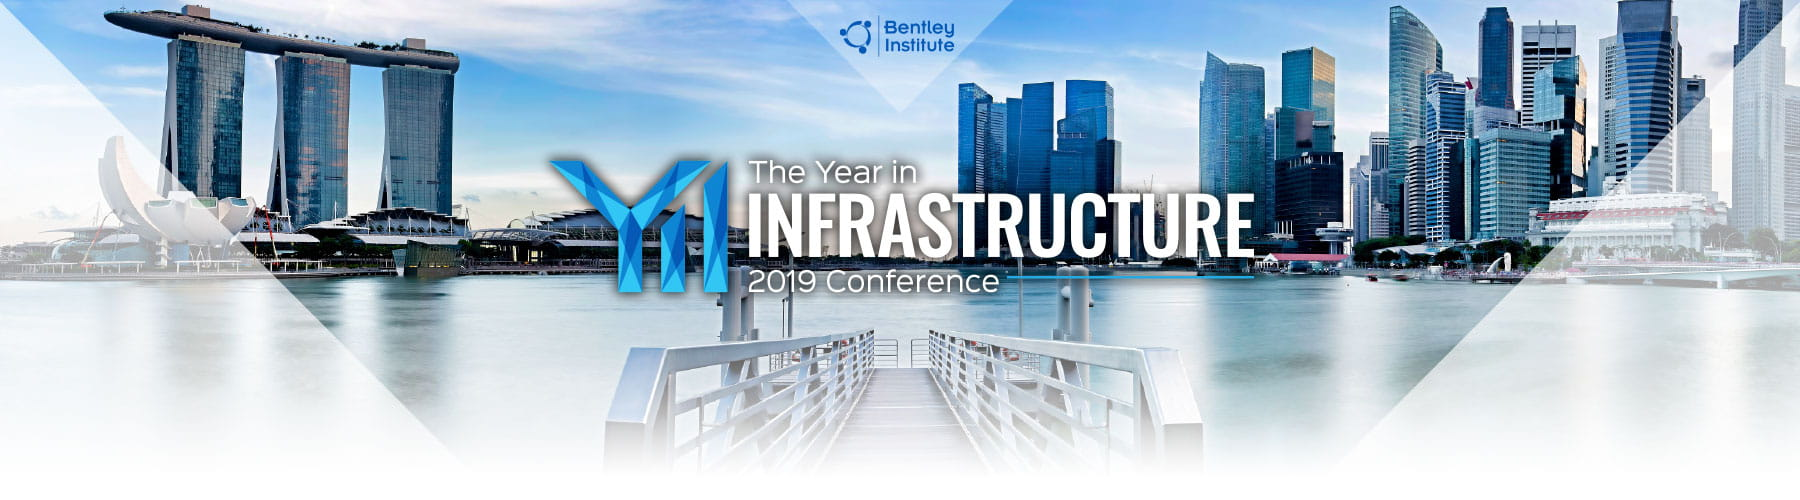 Year in Infrastructures 2019